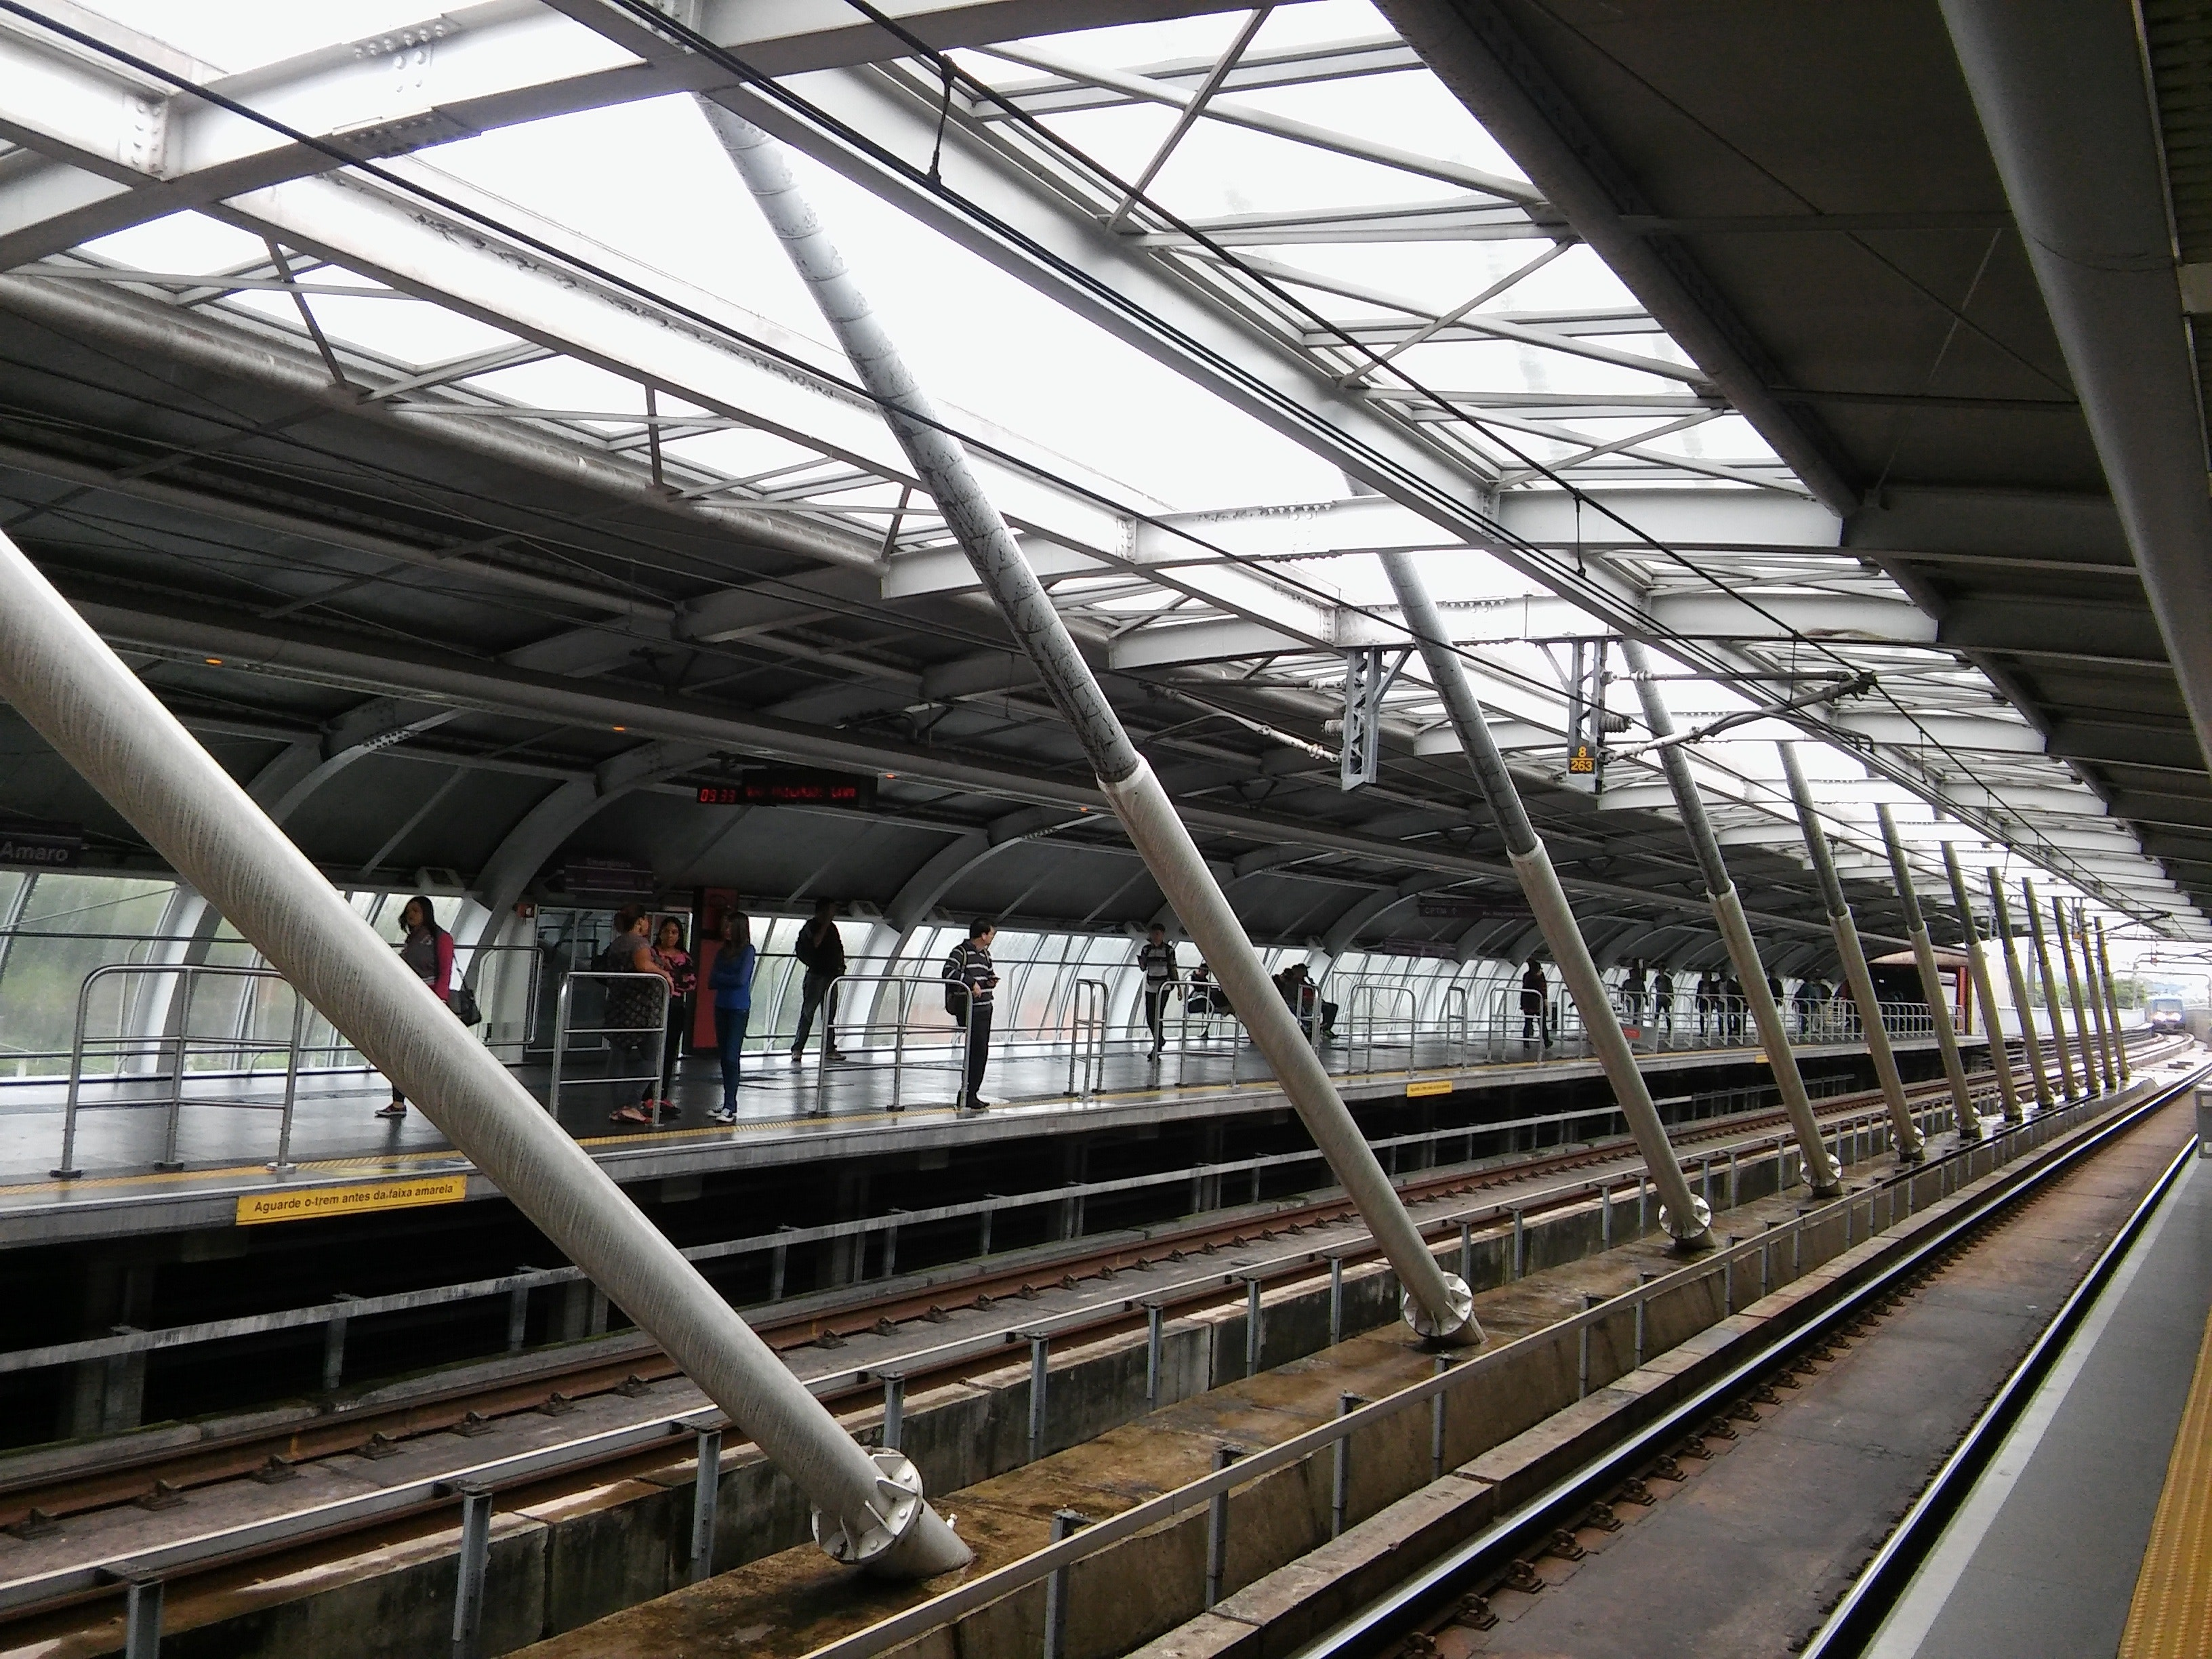 High Angle View of Elevated View of Railroad Station, Station, Urban, Tube, Travel, HQ Photo